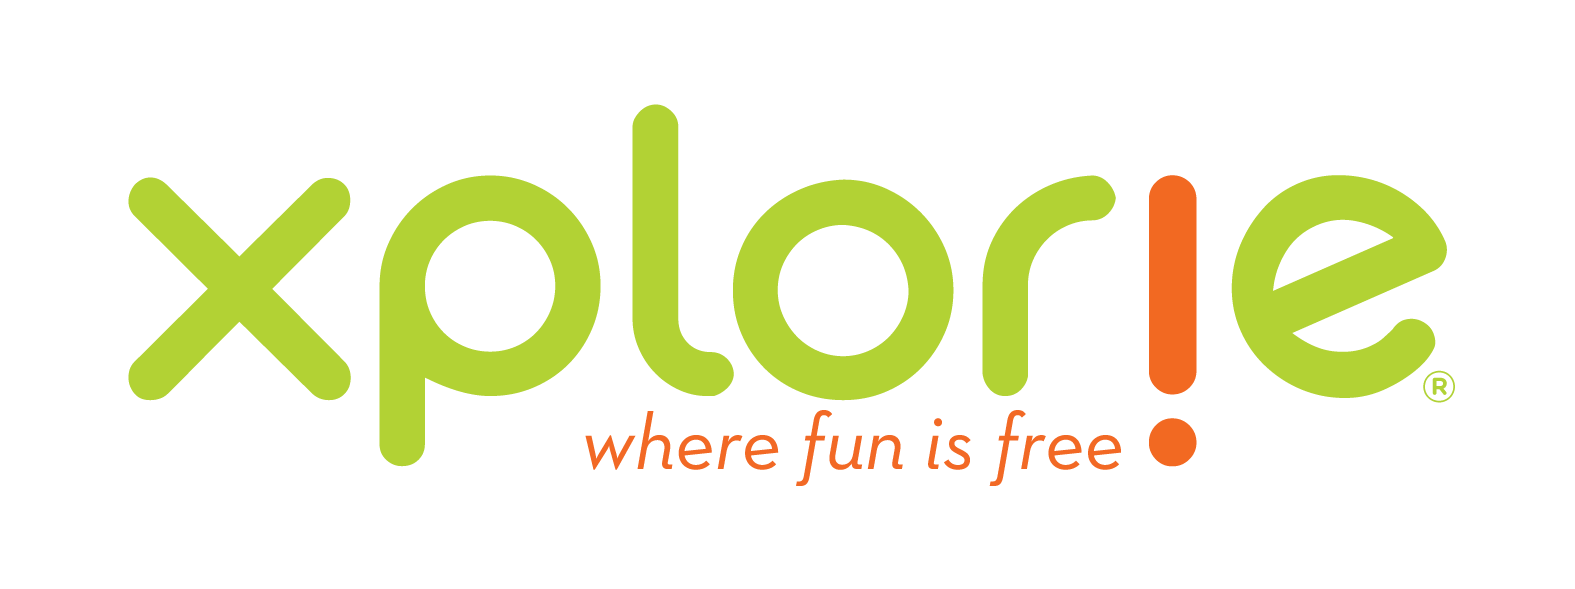 At Xplorie, we're all about helping you get the most out of your vacation. We partner with the best rental managers and traditional lodging locations to bring you the trip of a lifetime.